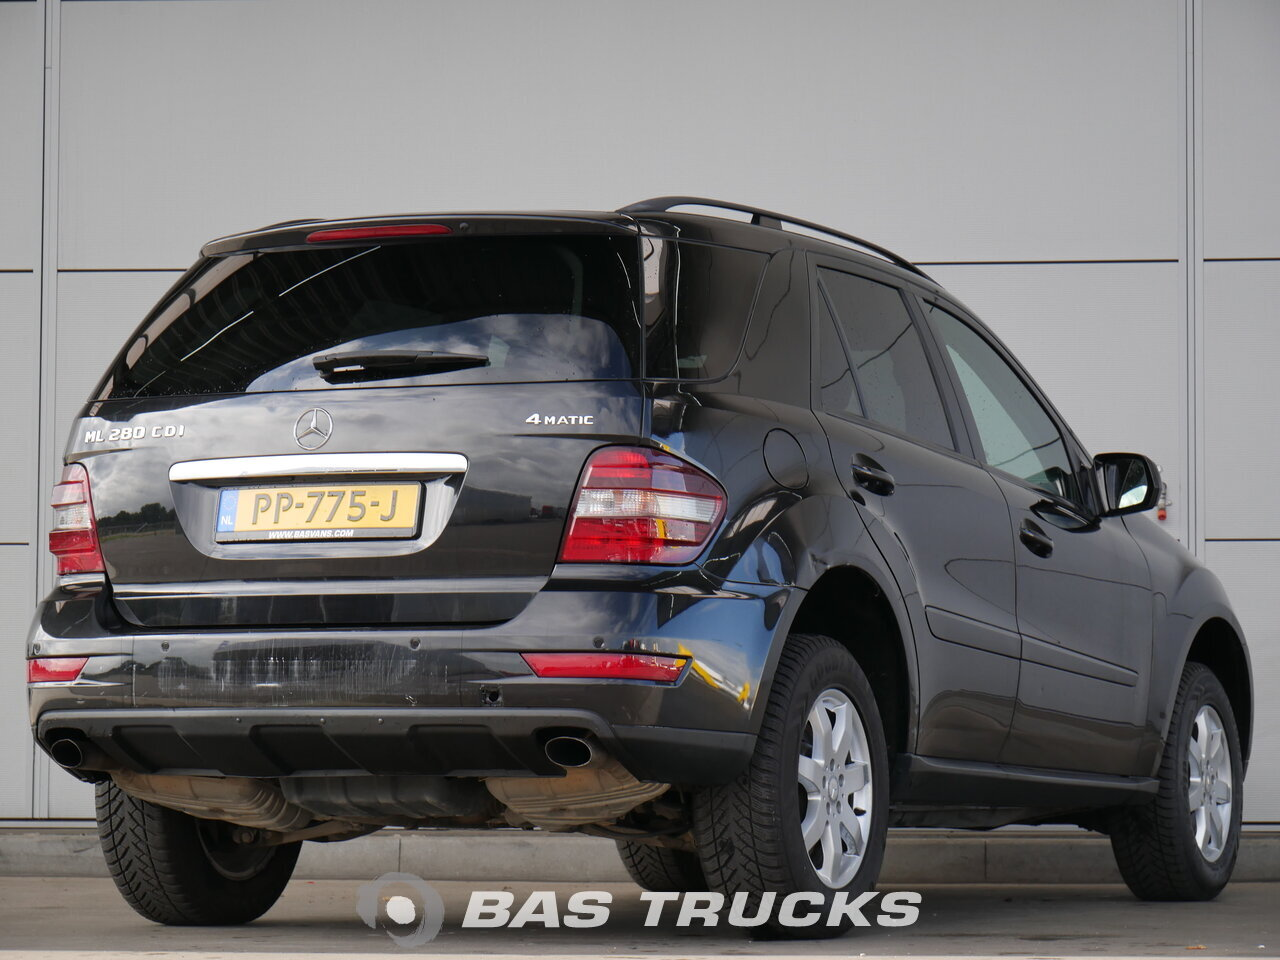 mercedes ml 280 cdi 4matic car euro norm 0 13500 bas trucks. Black Bedroom Furniture Sets. Home Design Ideas